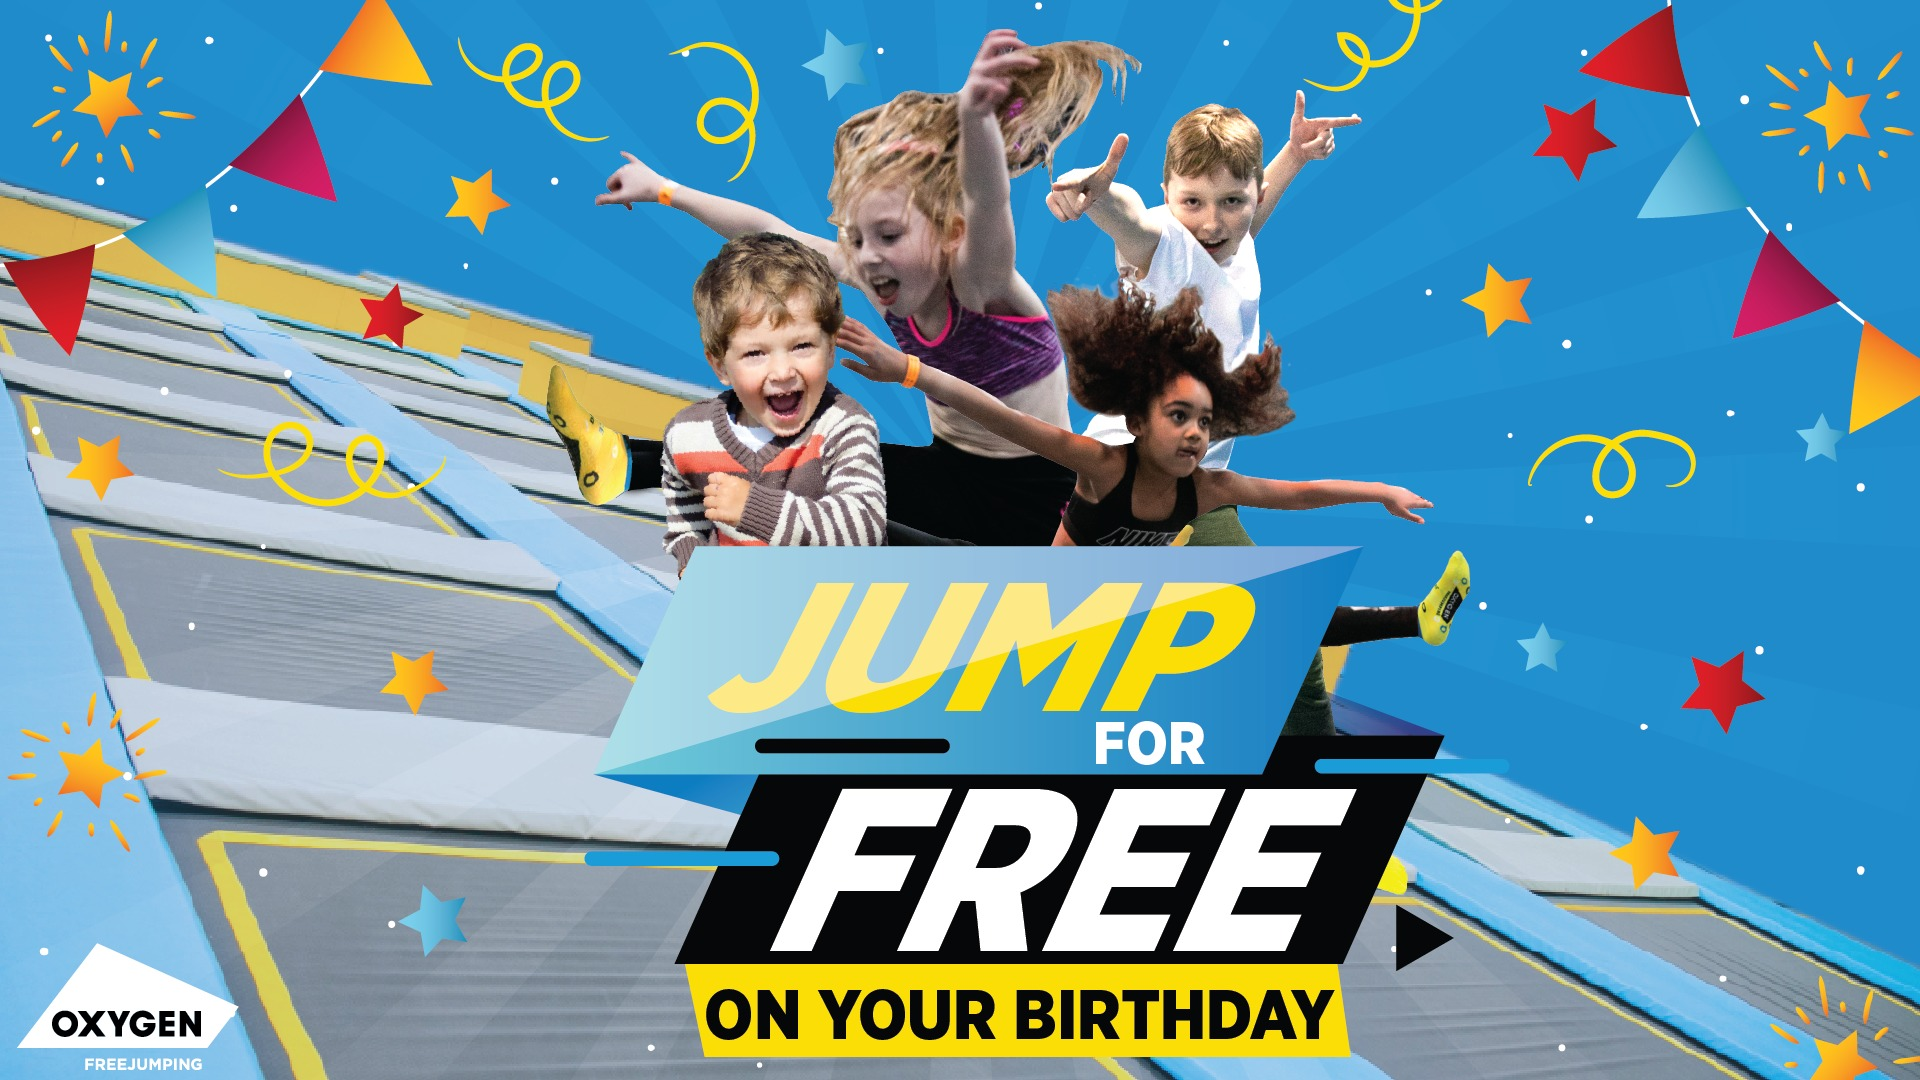 Free Freejump on your birthday